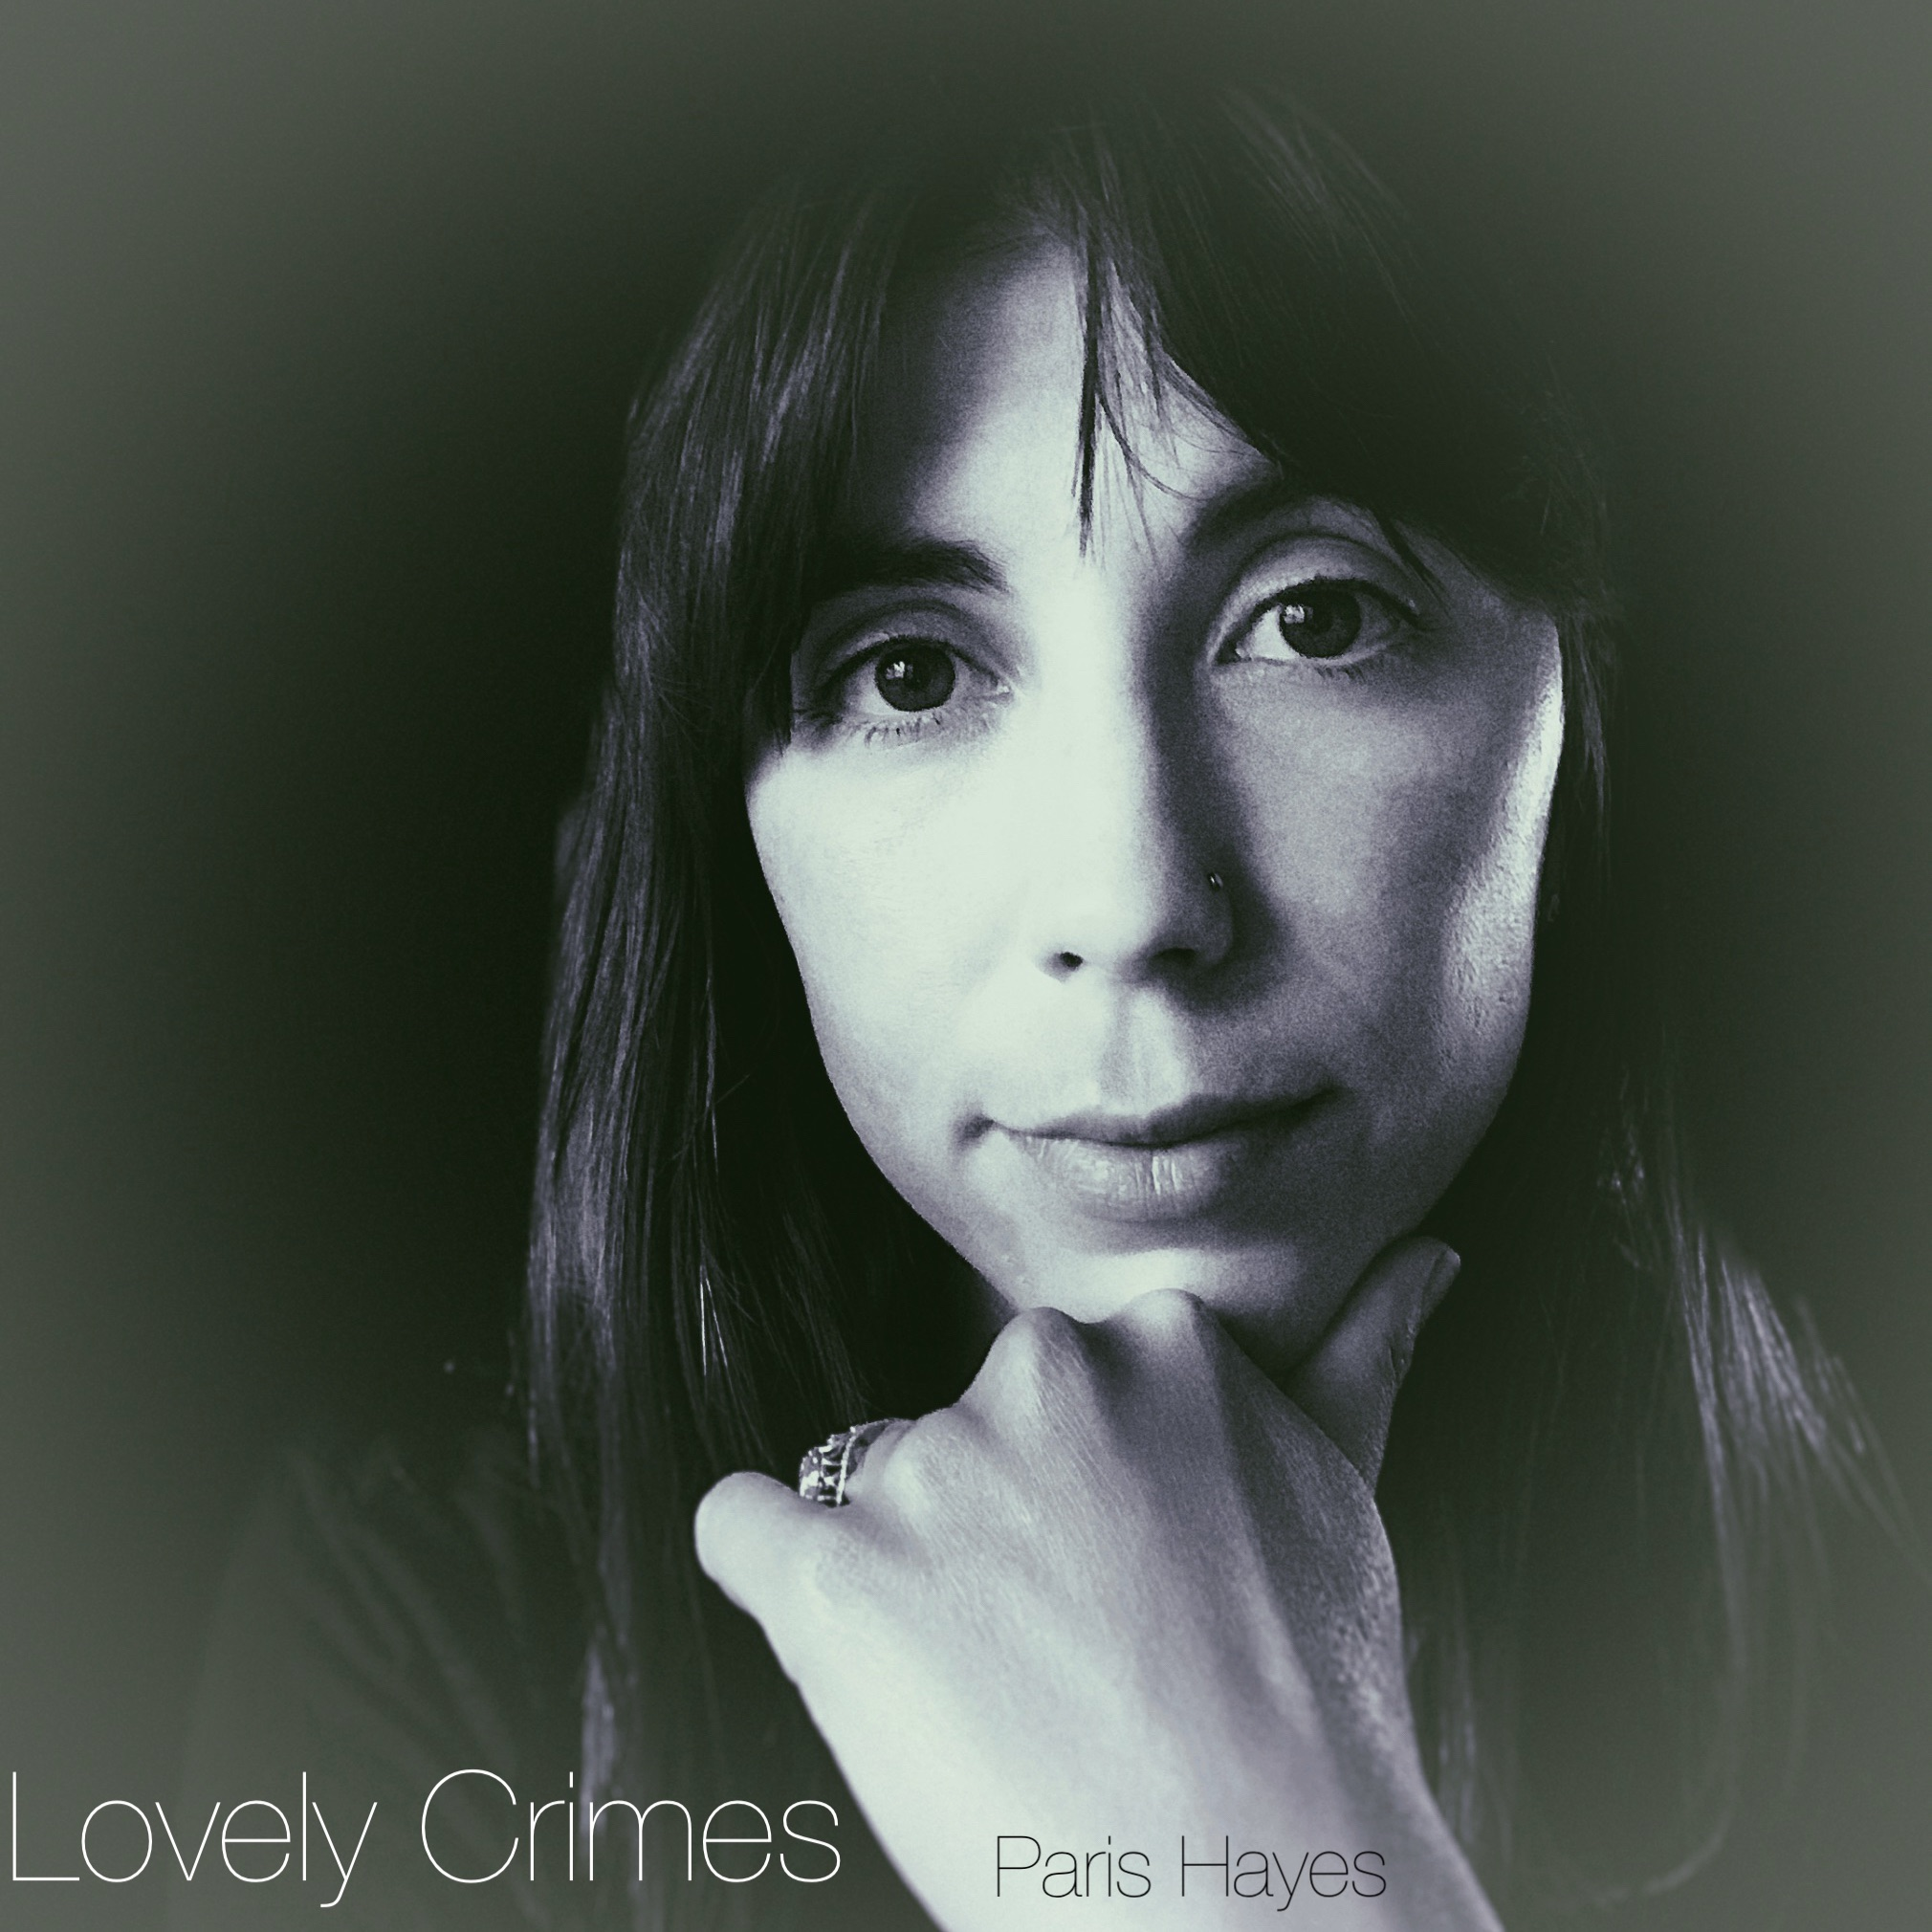 Lovely Crimes - Lead Vocals: Paris HayesGuitar: Colin HayesBass, Keys and BGV: Lily BurnsDrums: Kevin Hayes© Paris Hayes Music 2019